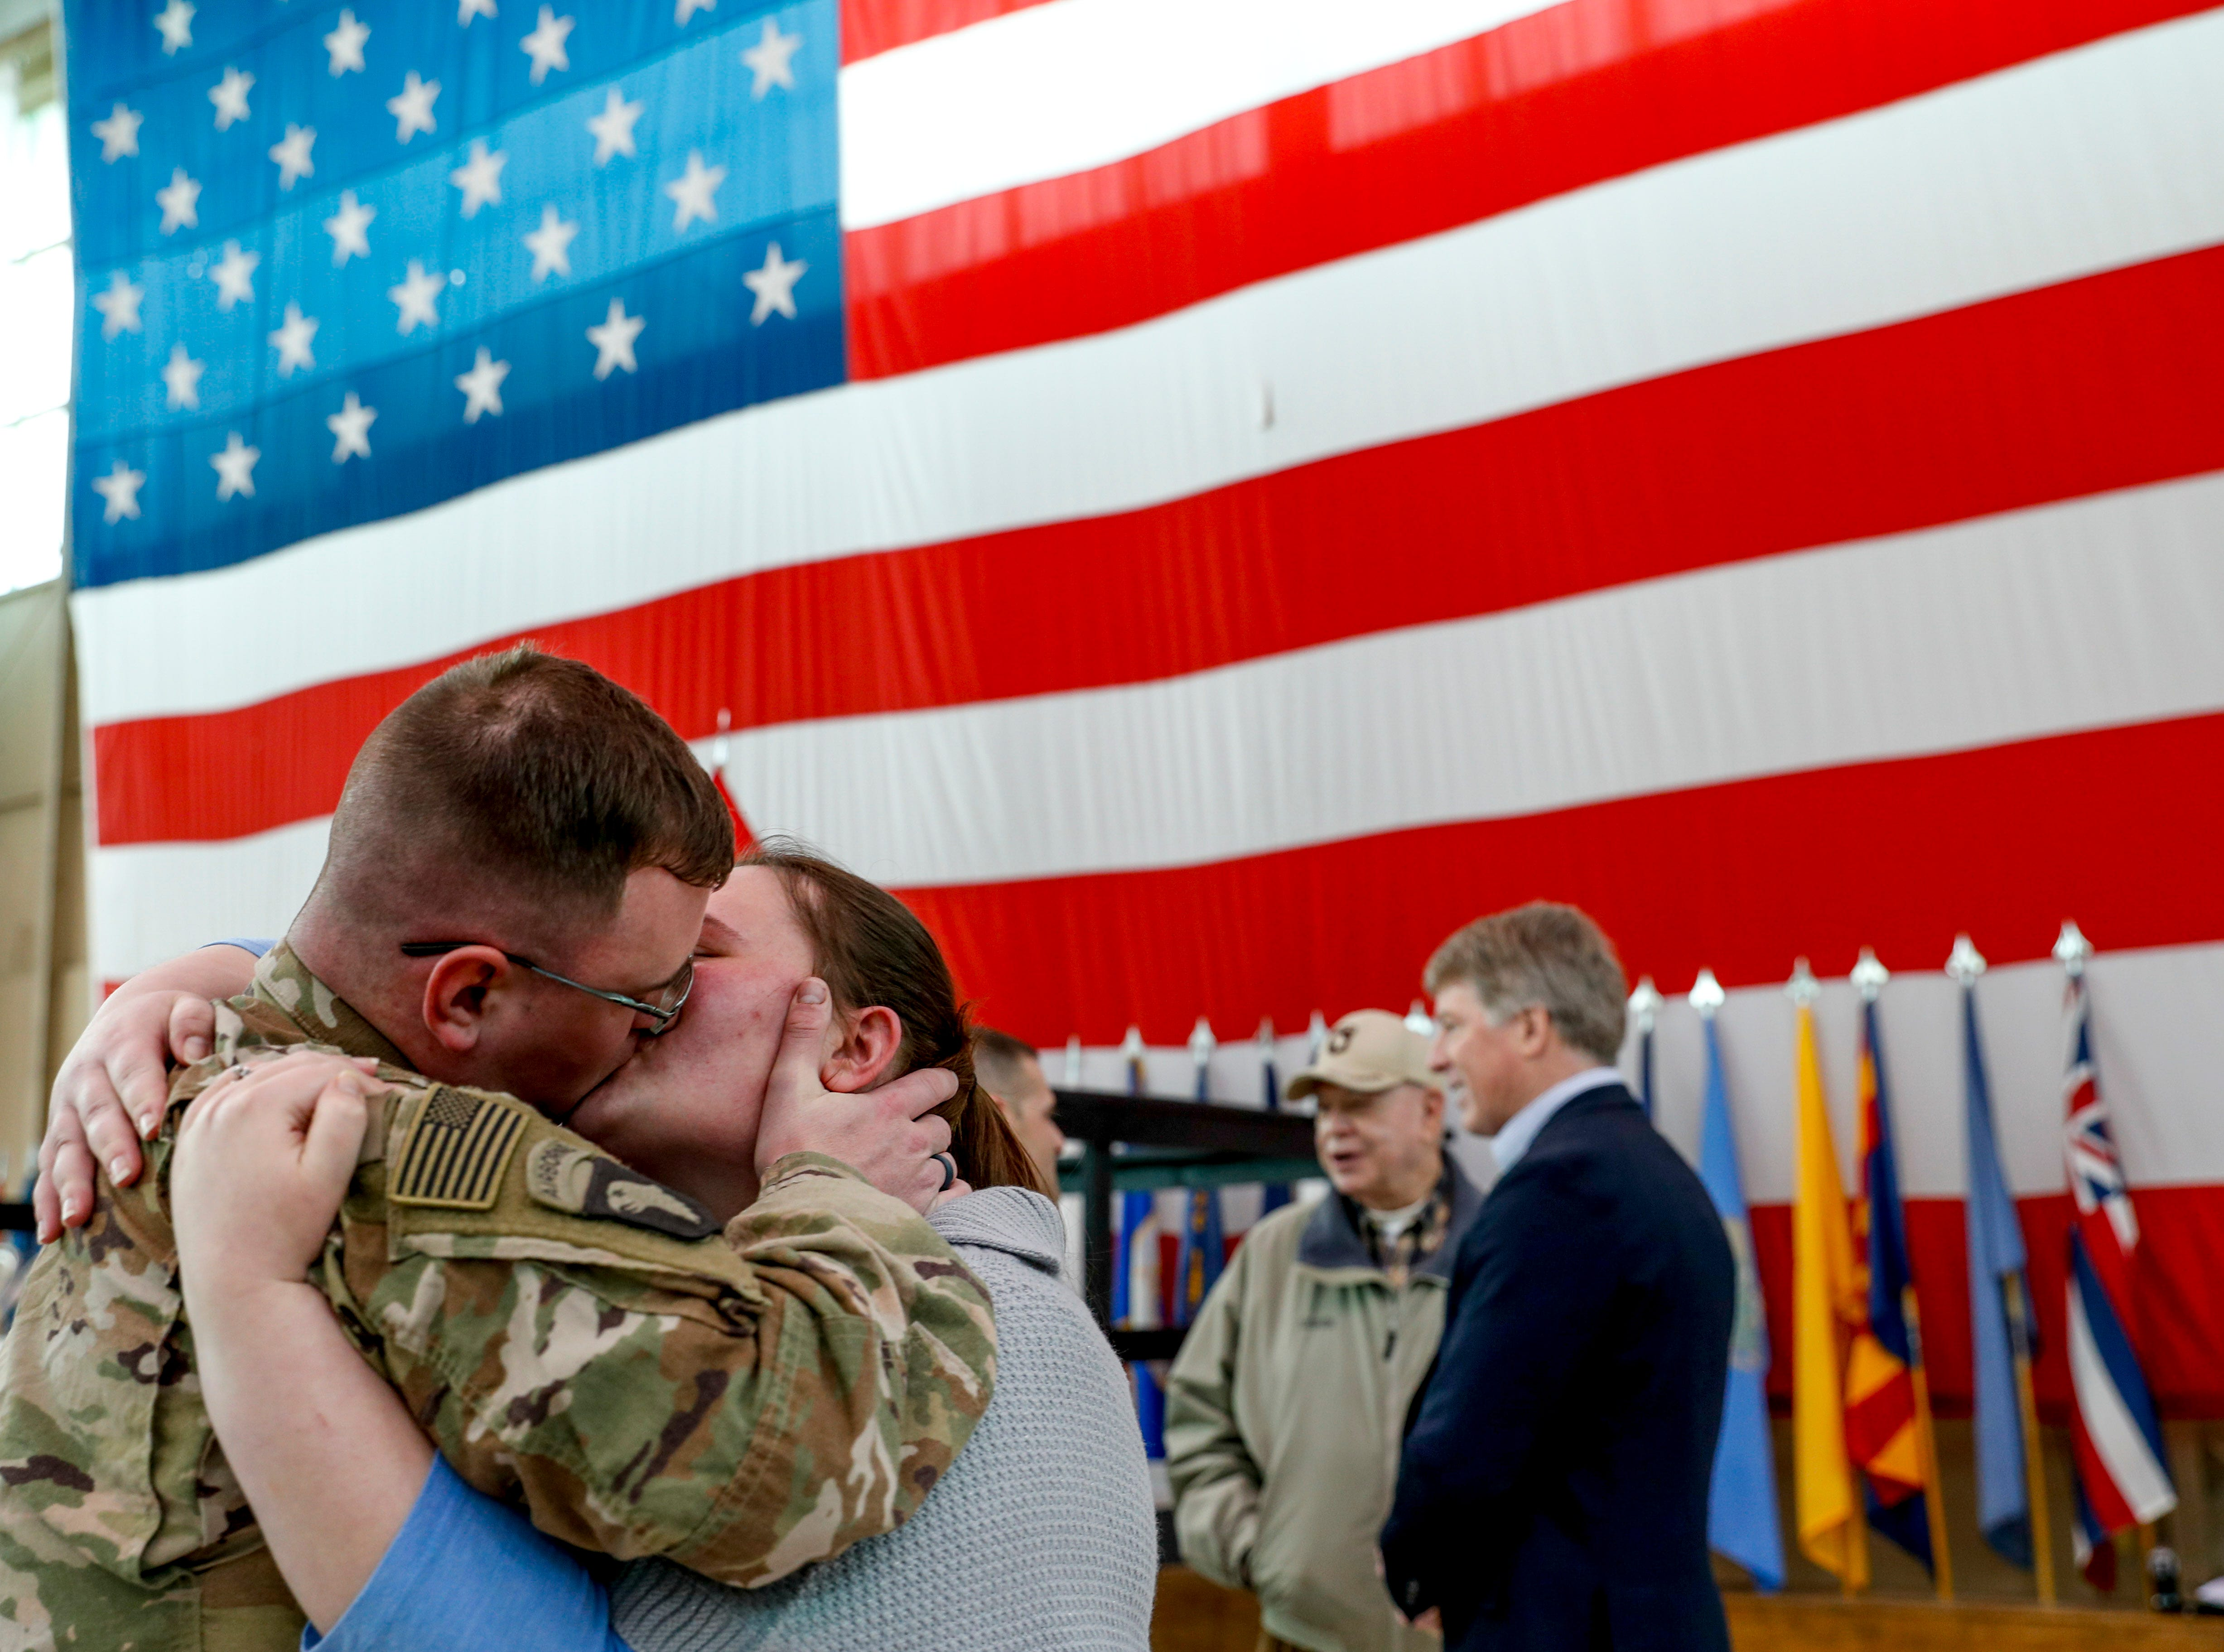 Sgt. William Hagen and Valerie Hagen embrace and kiss upon seeing one another during the return of soldiers from the 101st Combat Aviation Brigade of 101st Airborne Division (Air Assault) at Campbell Army Air Field in Fort Campbell, KY., on Sunday, March 10, 2019.